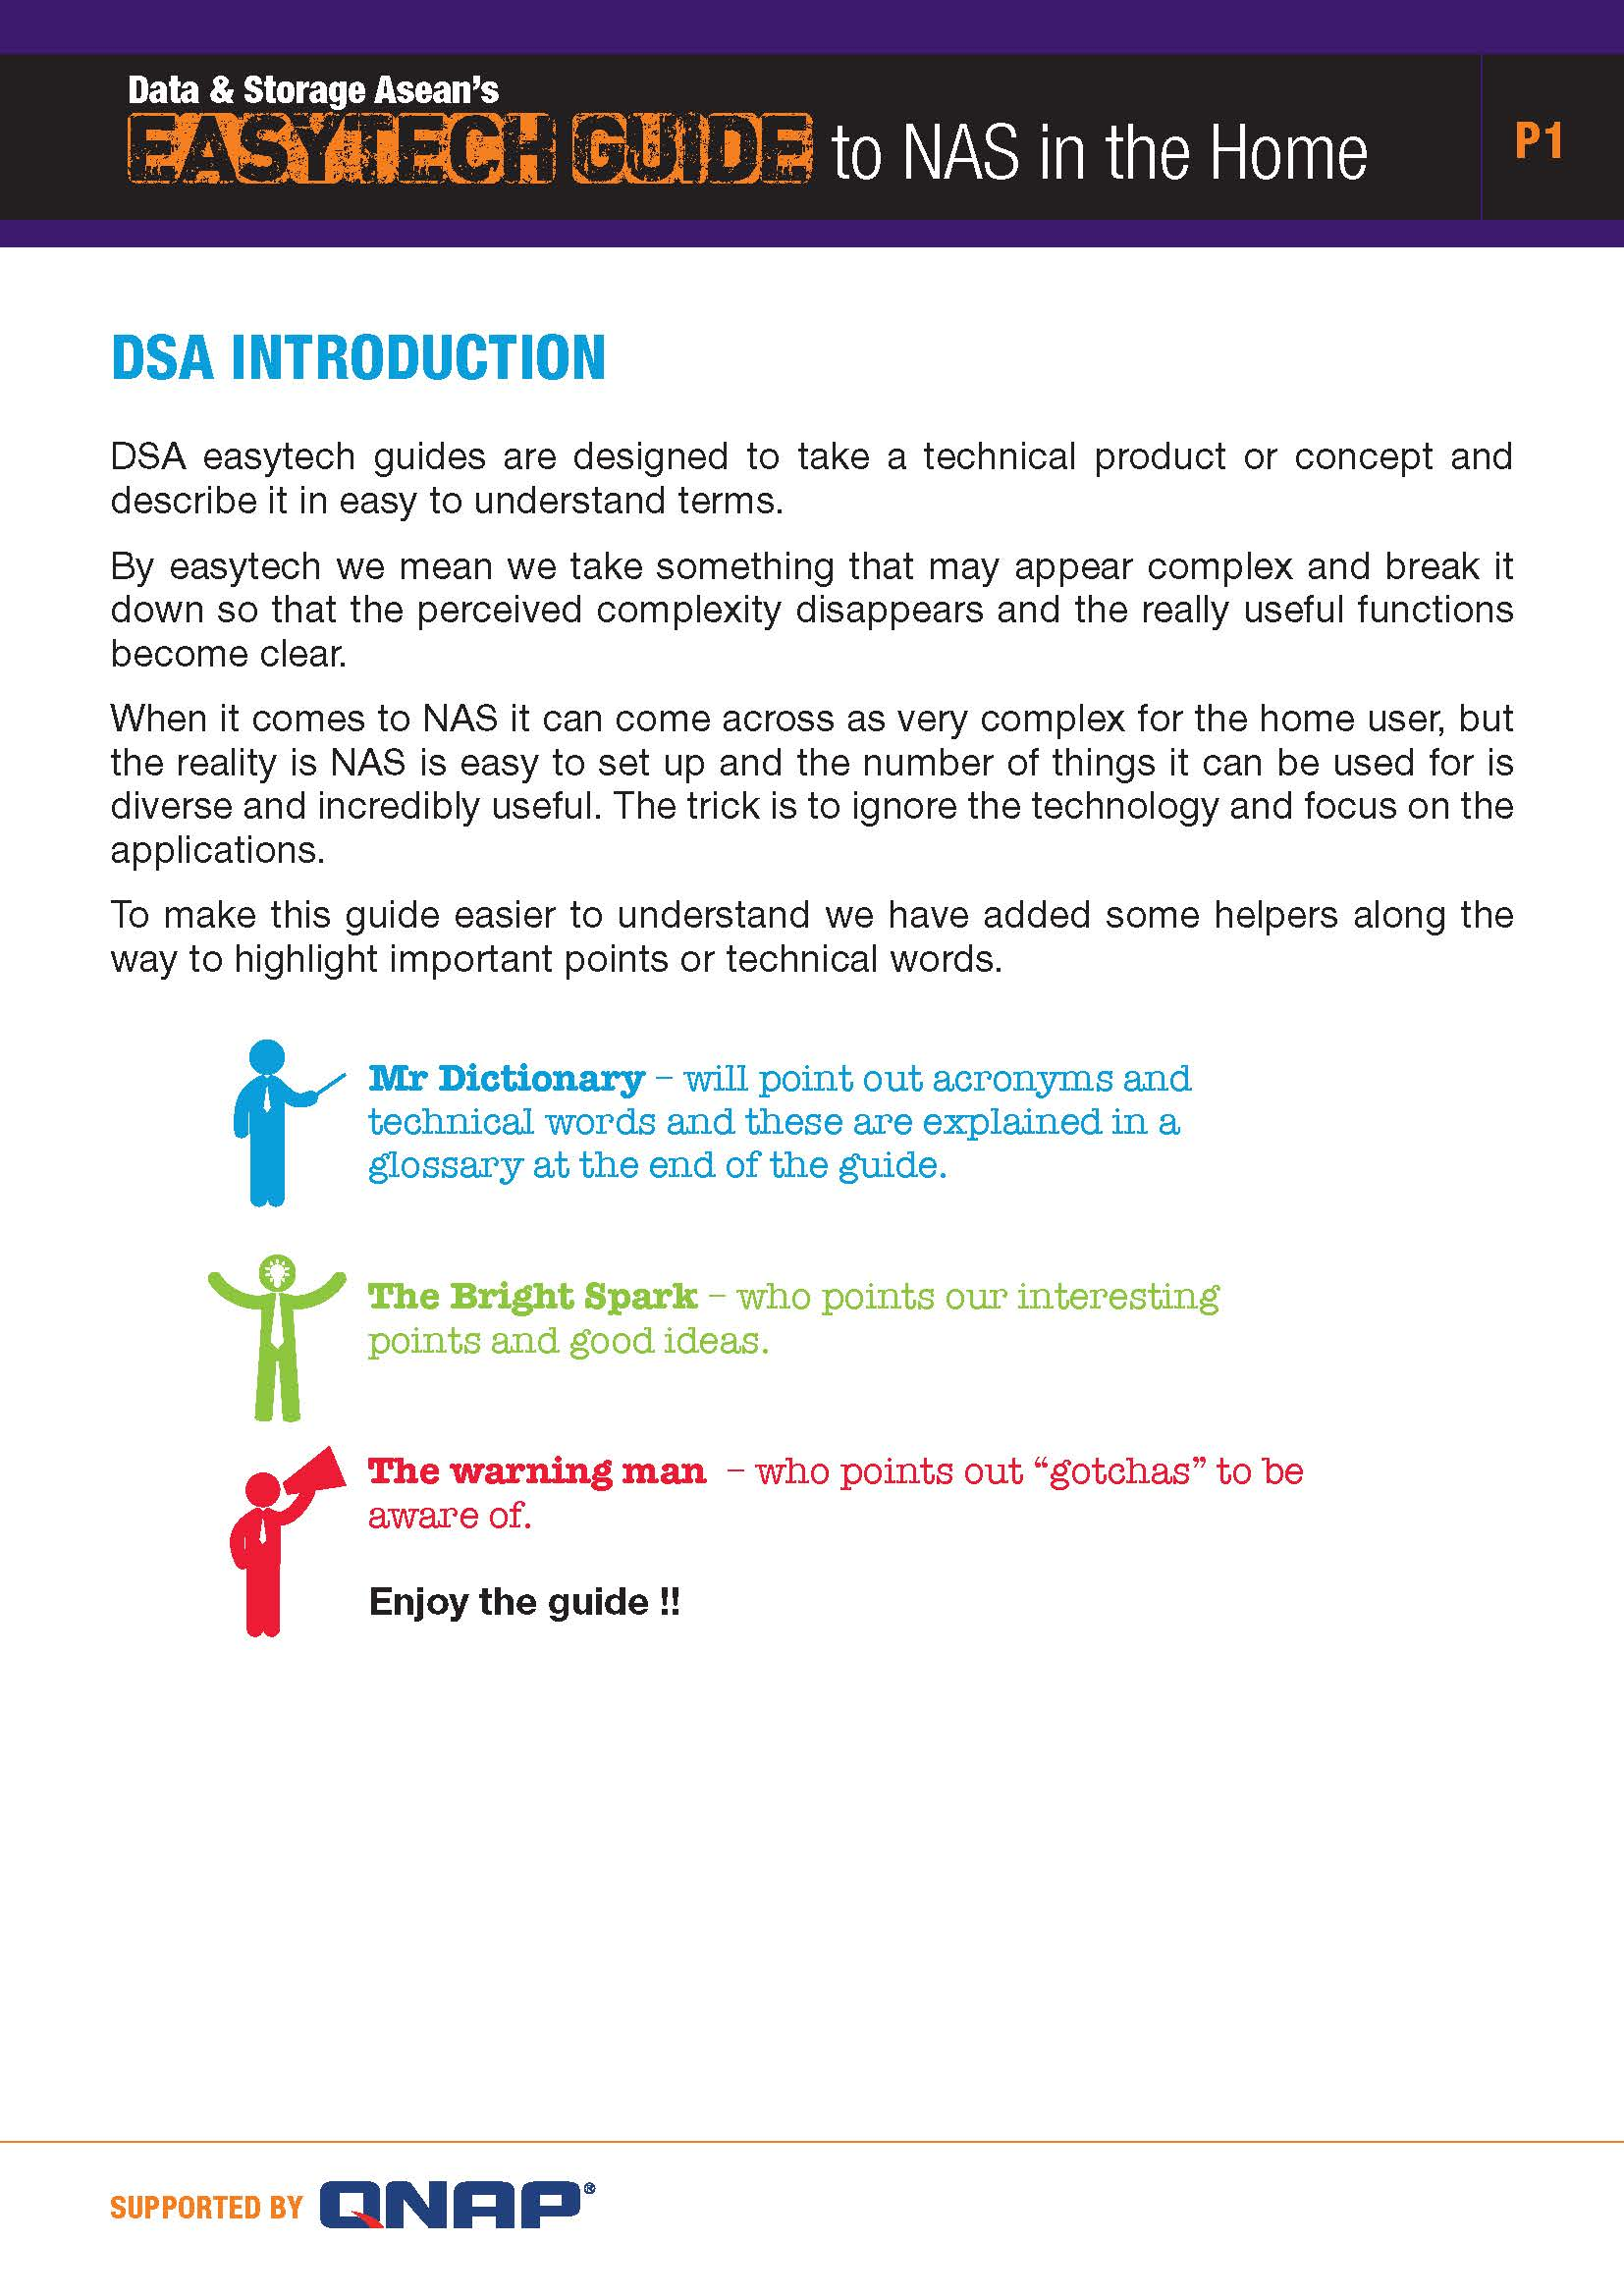 DSA EasyTech Guide to NAS in the Home FINAL Page 02